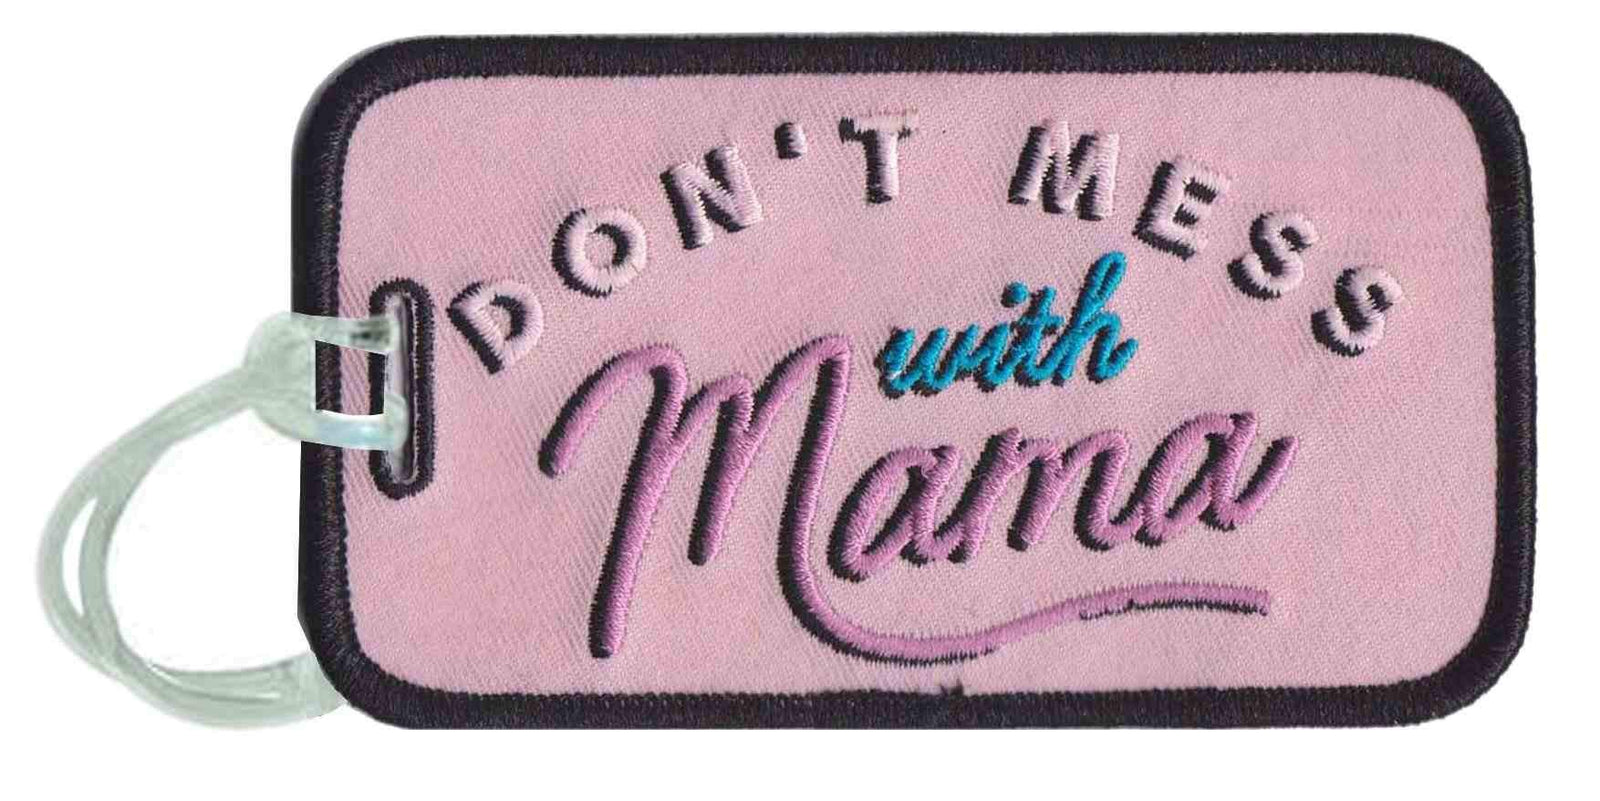 Don't Mess With Mama Wholesale Luggage Tags